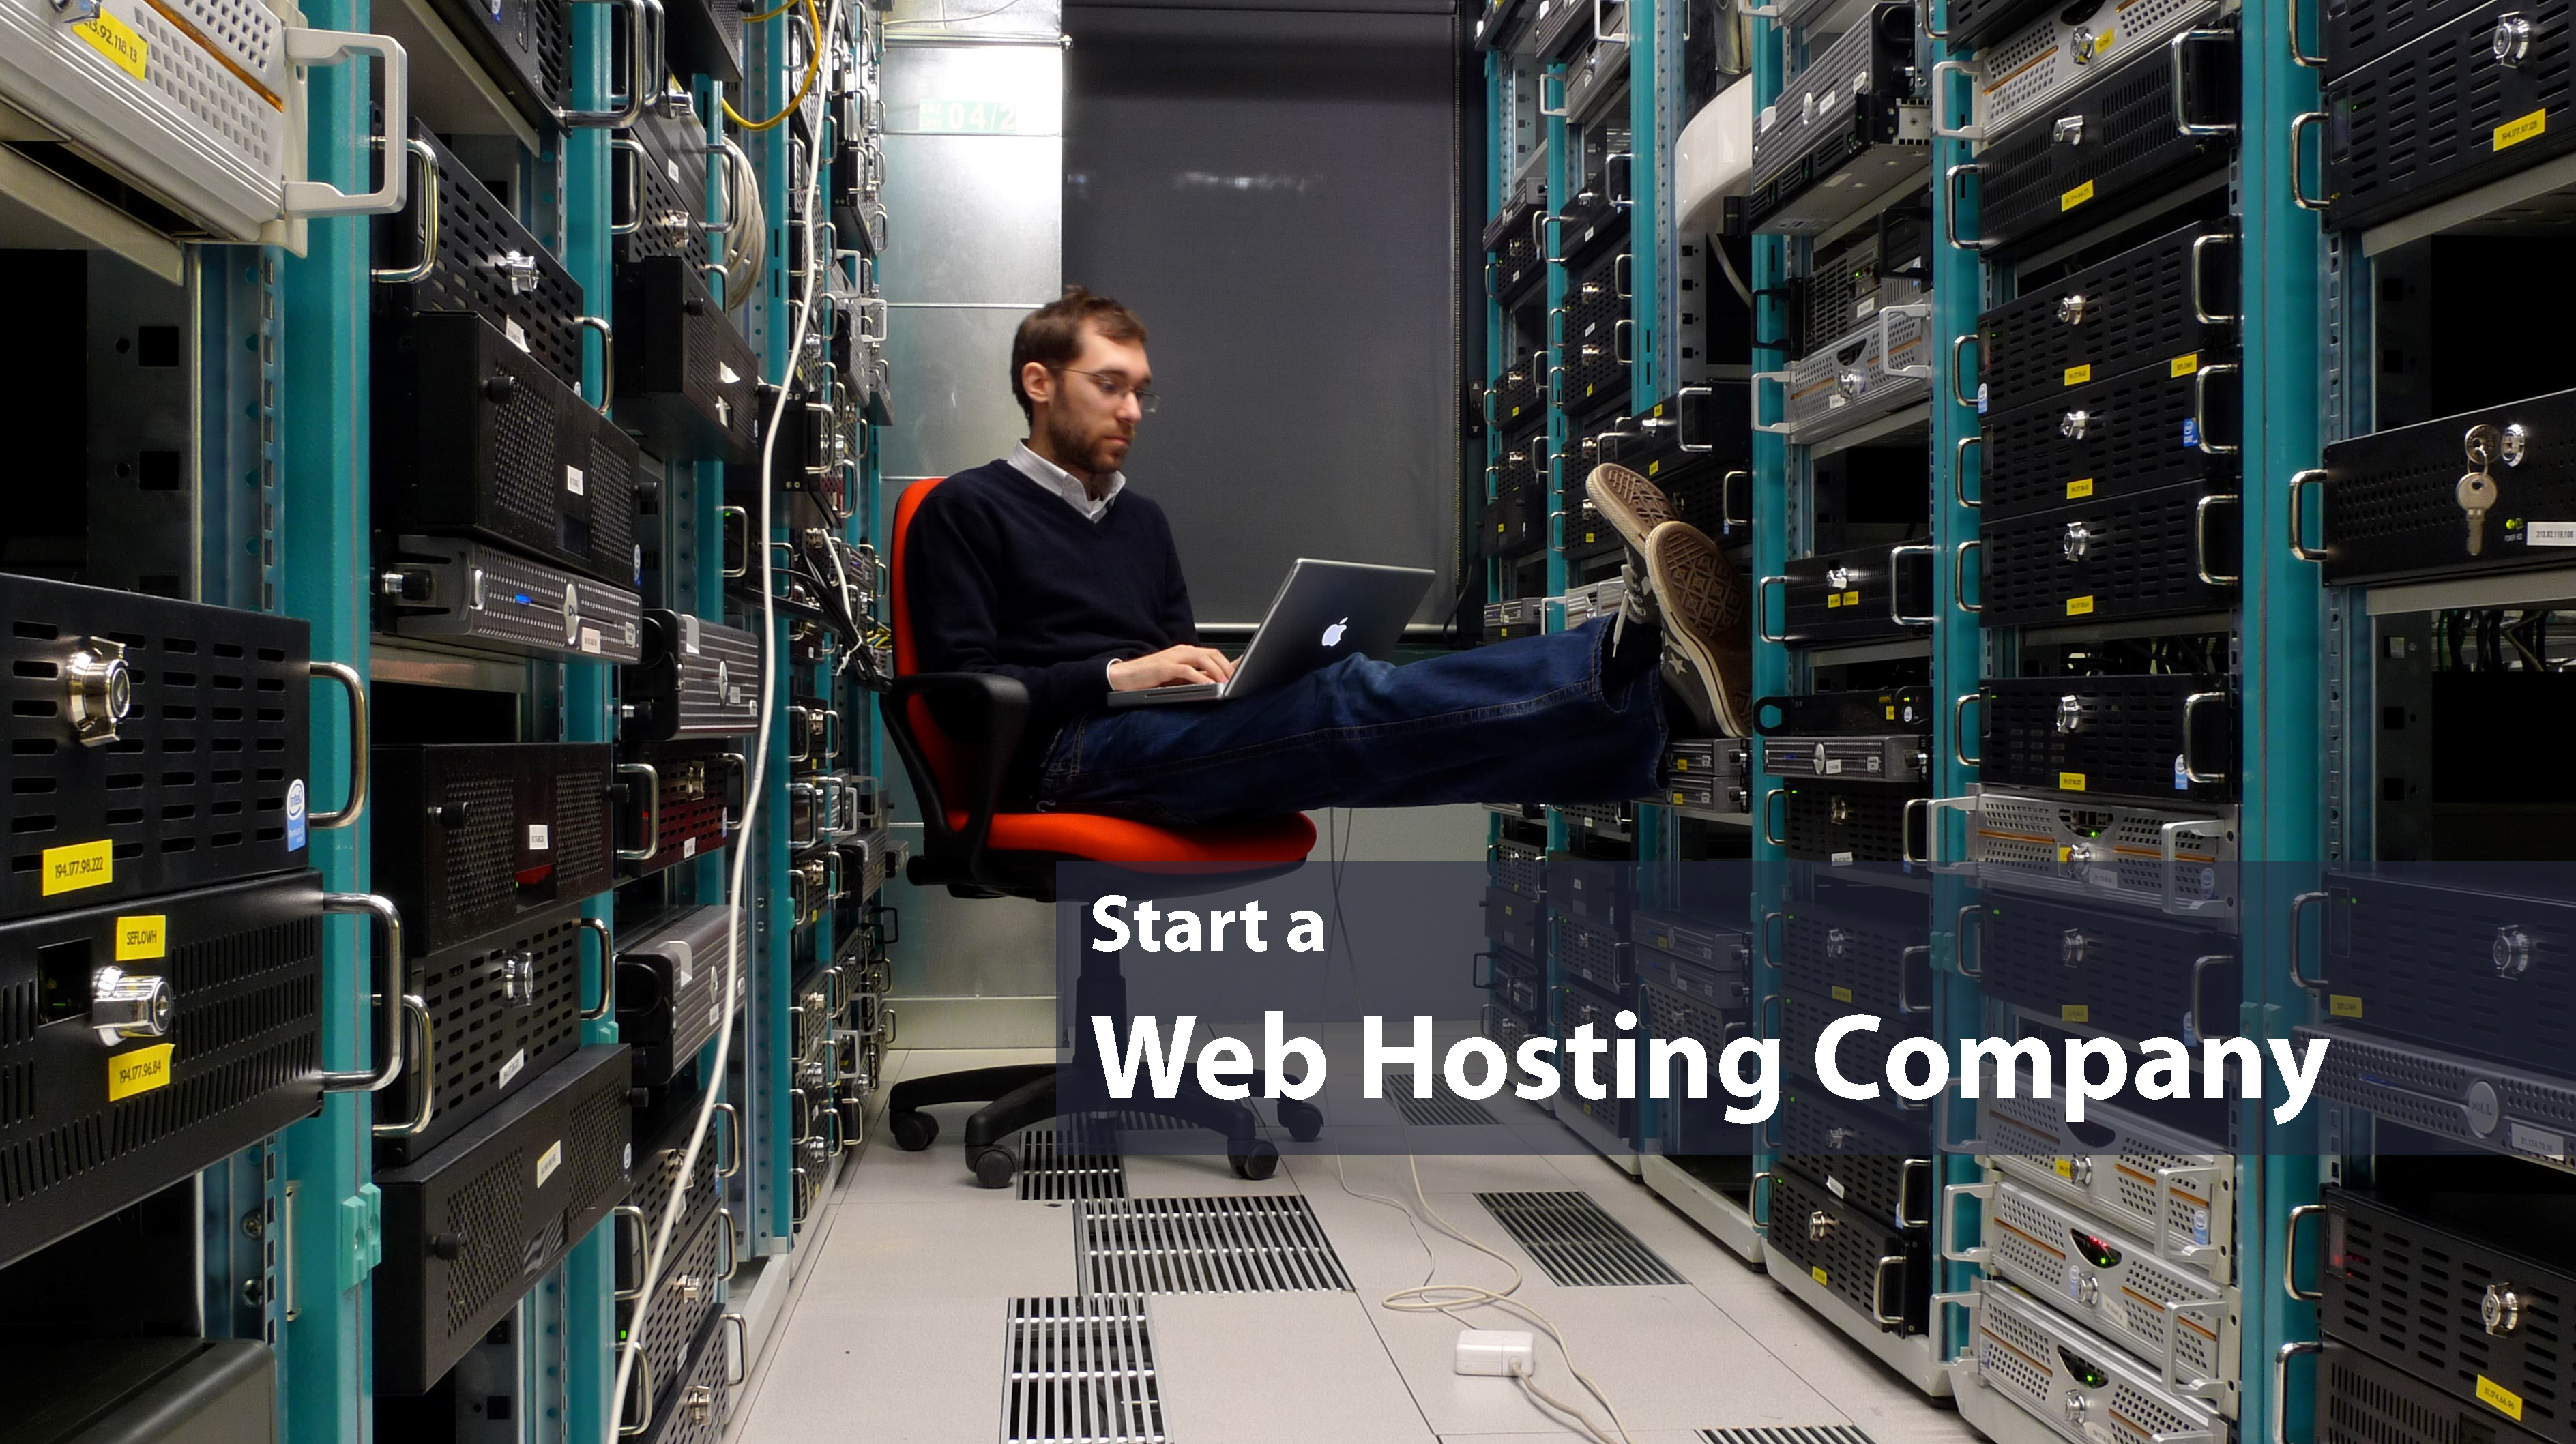 Start A Web Hosting Company